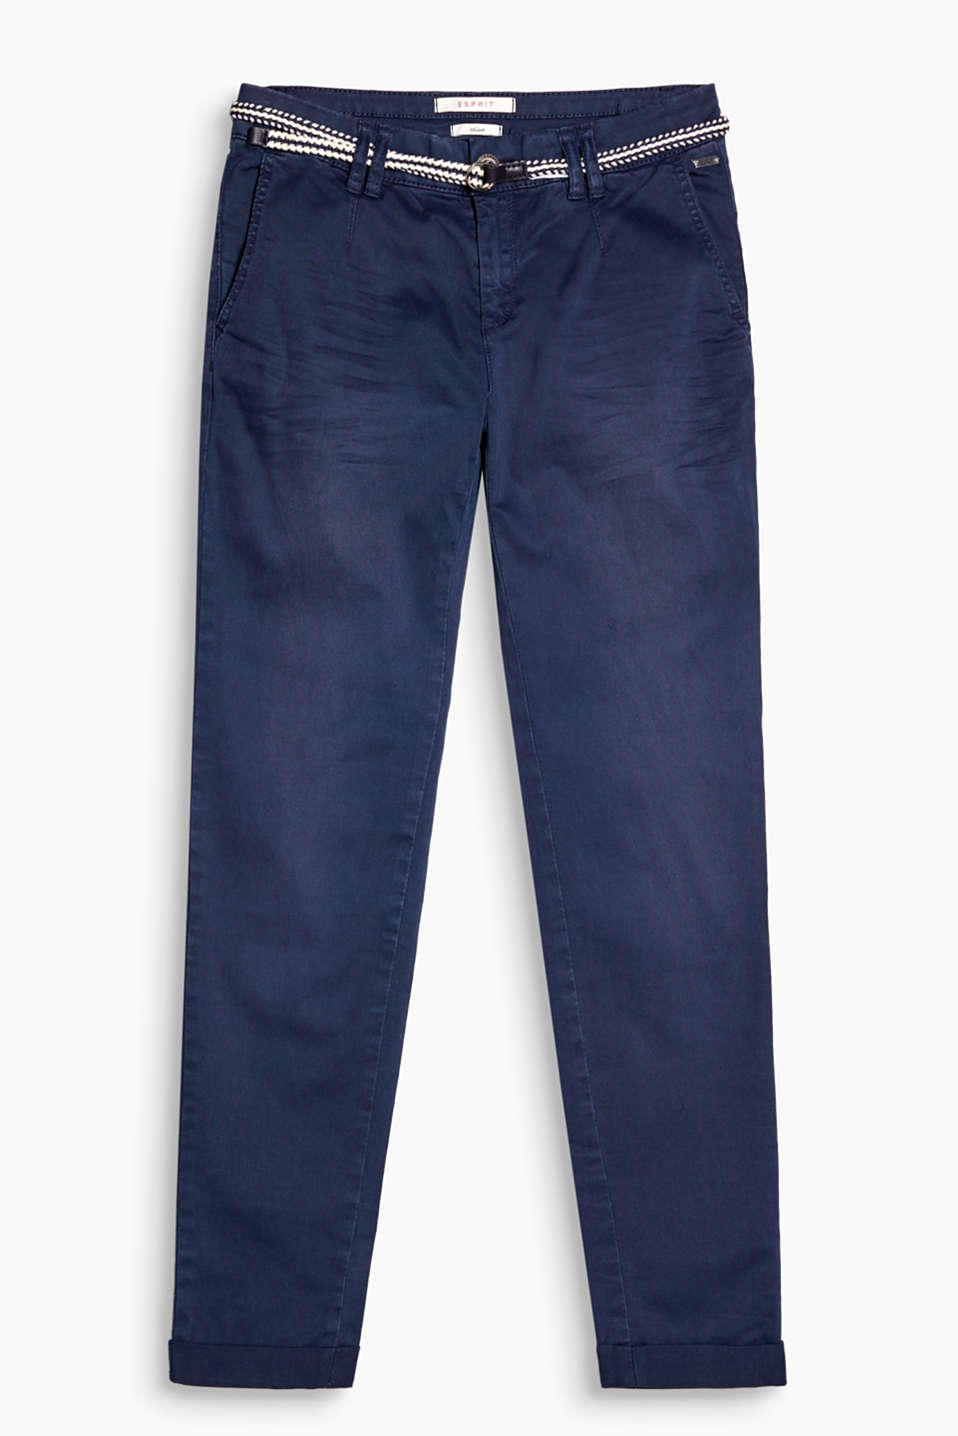 With authentic whiskering and garment-washed effects: chinos with a narrow woven belt, made of stretch cotton